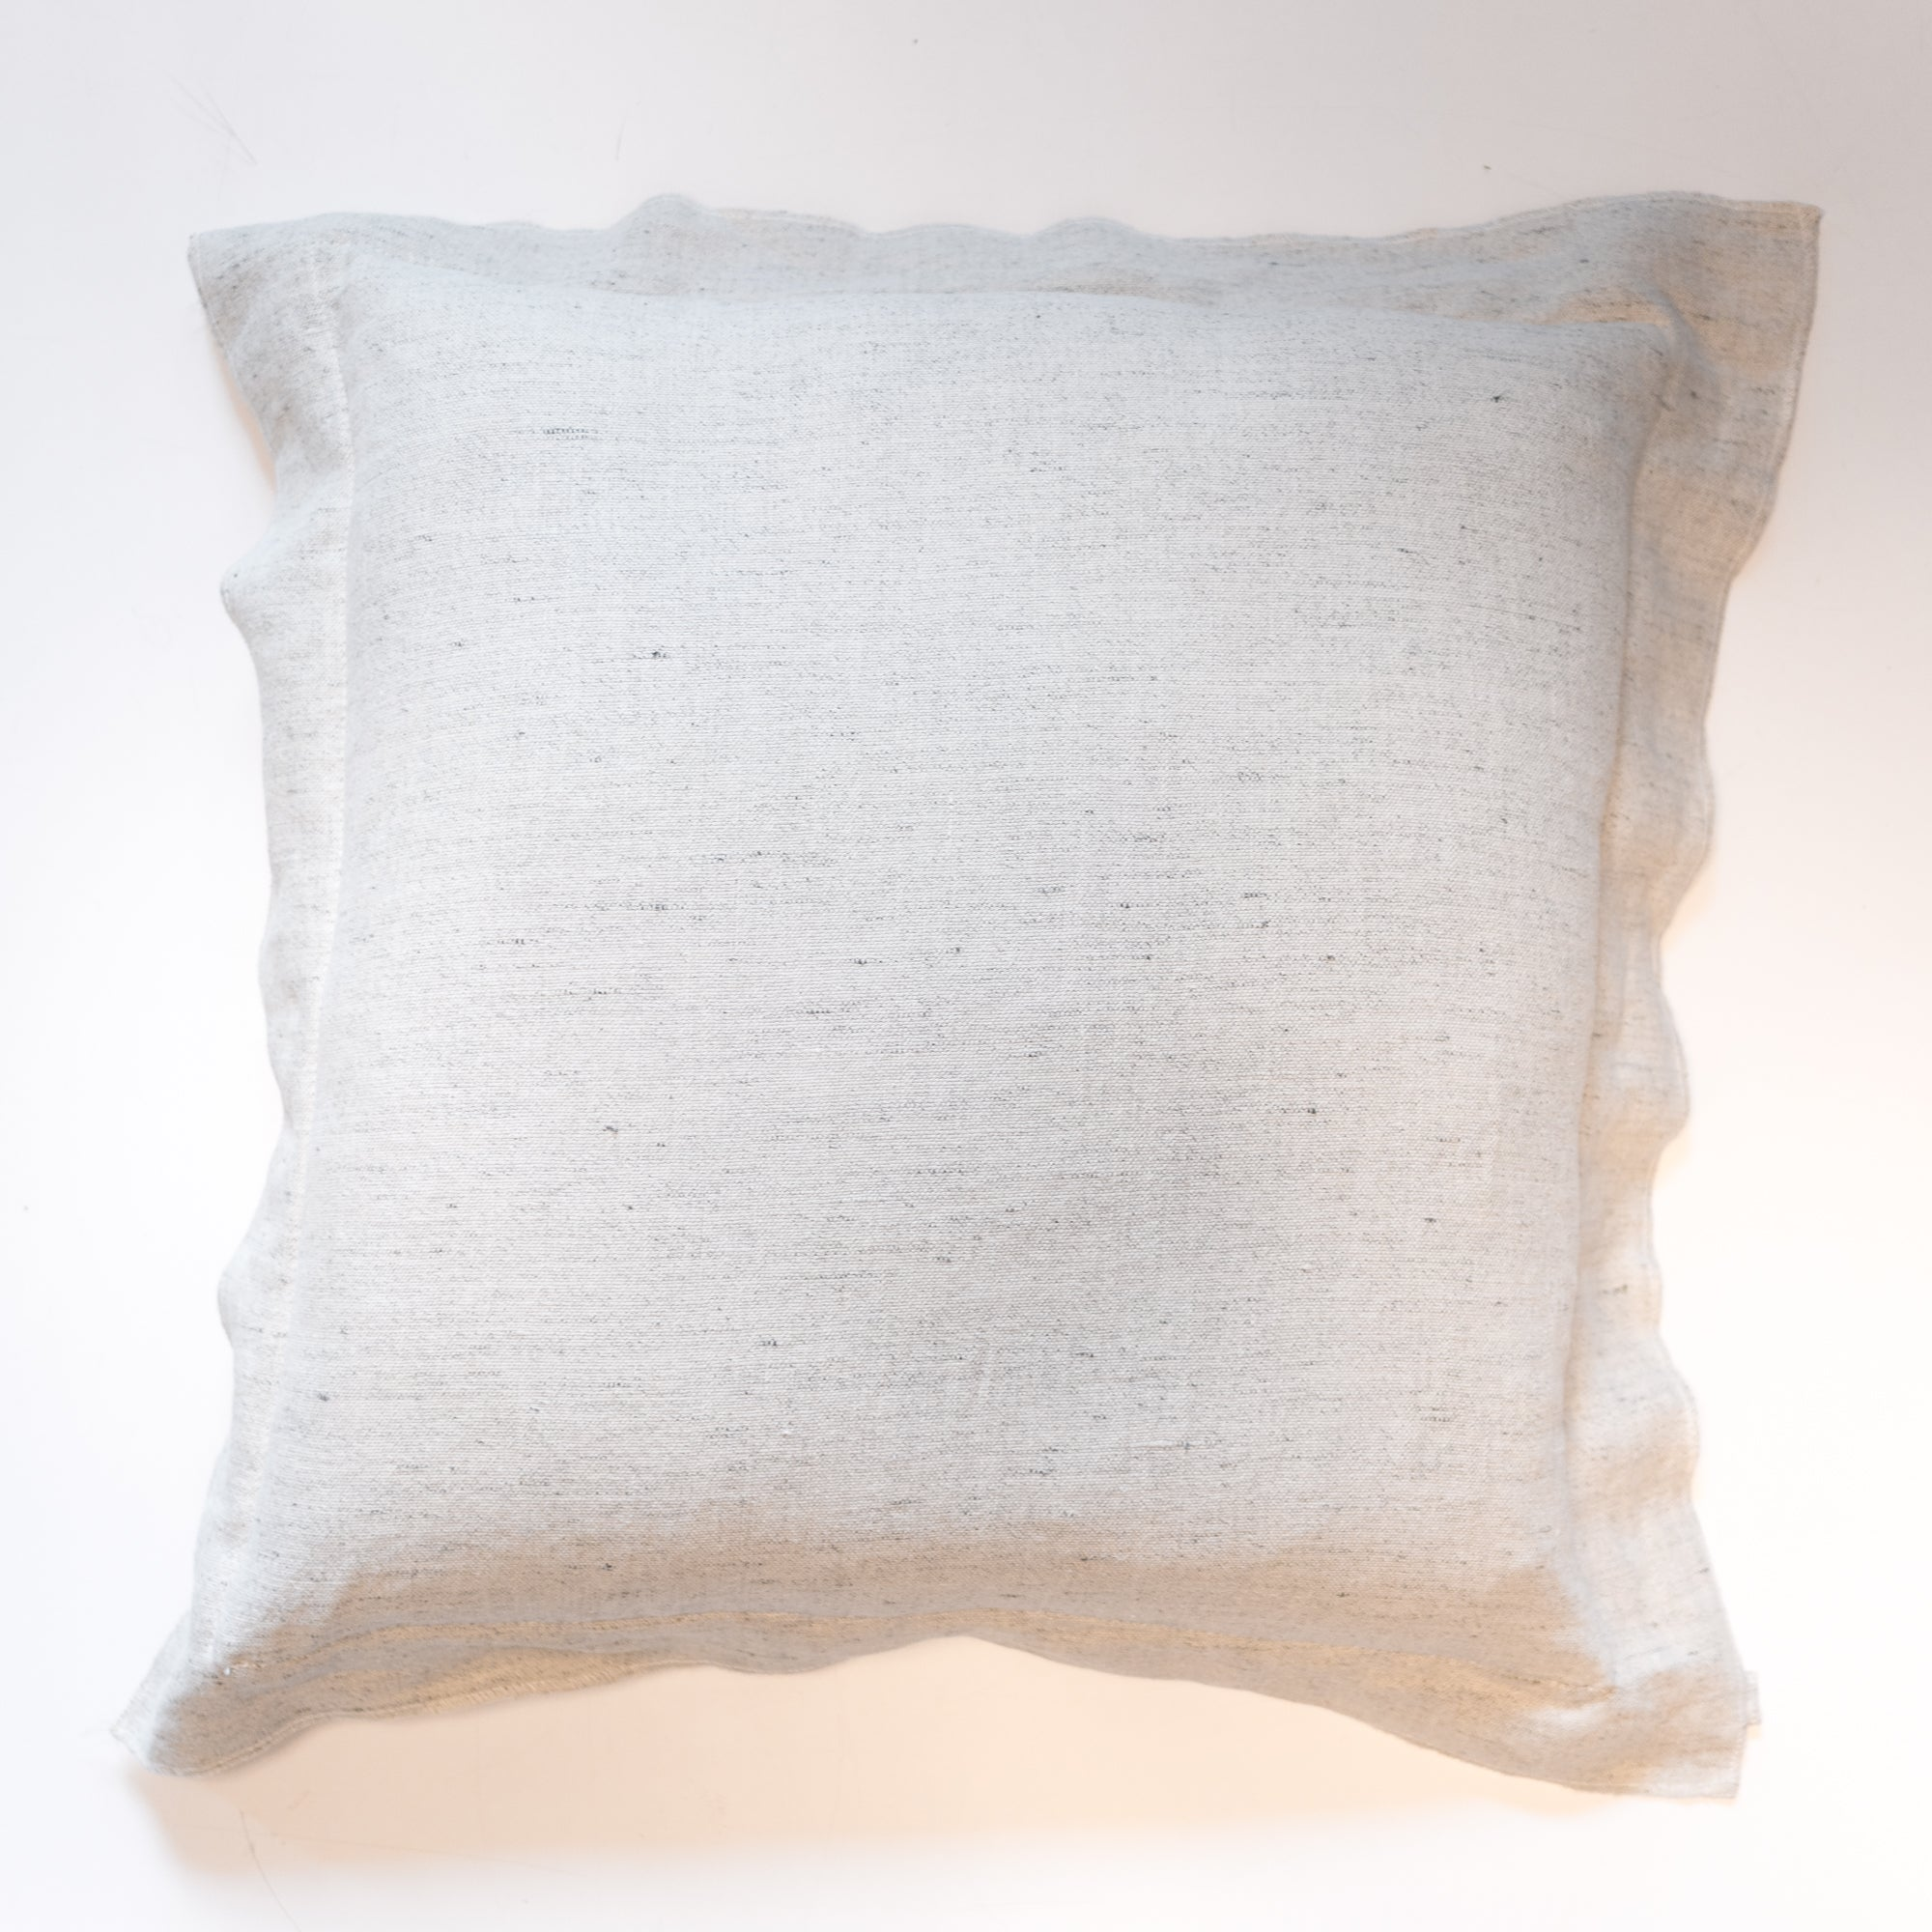 Blake Slubby Linen Pillow